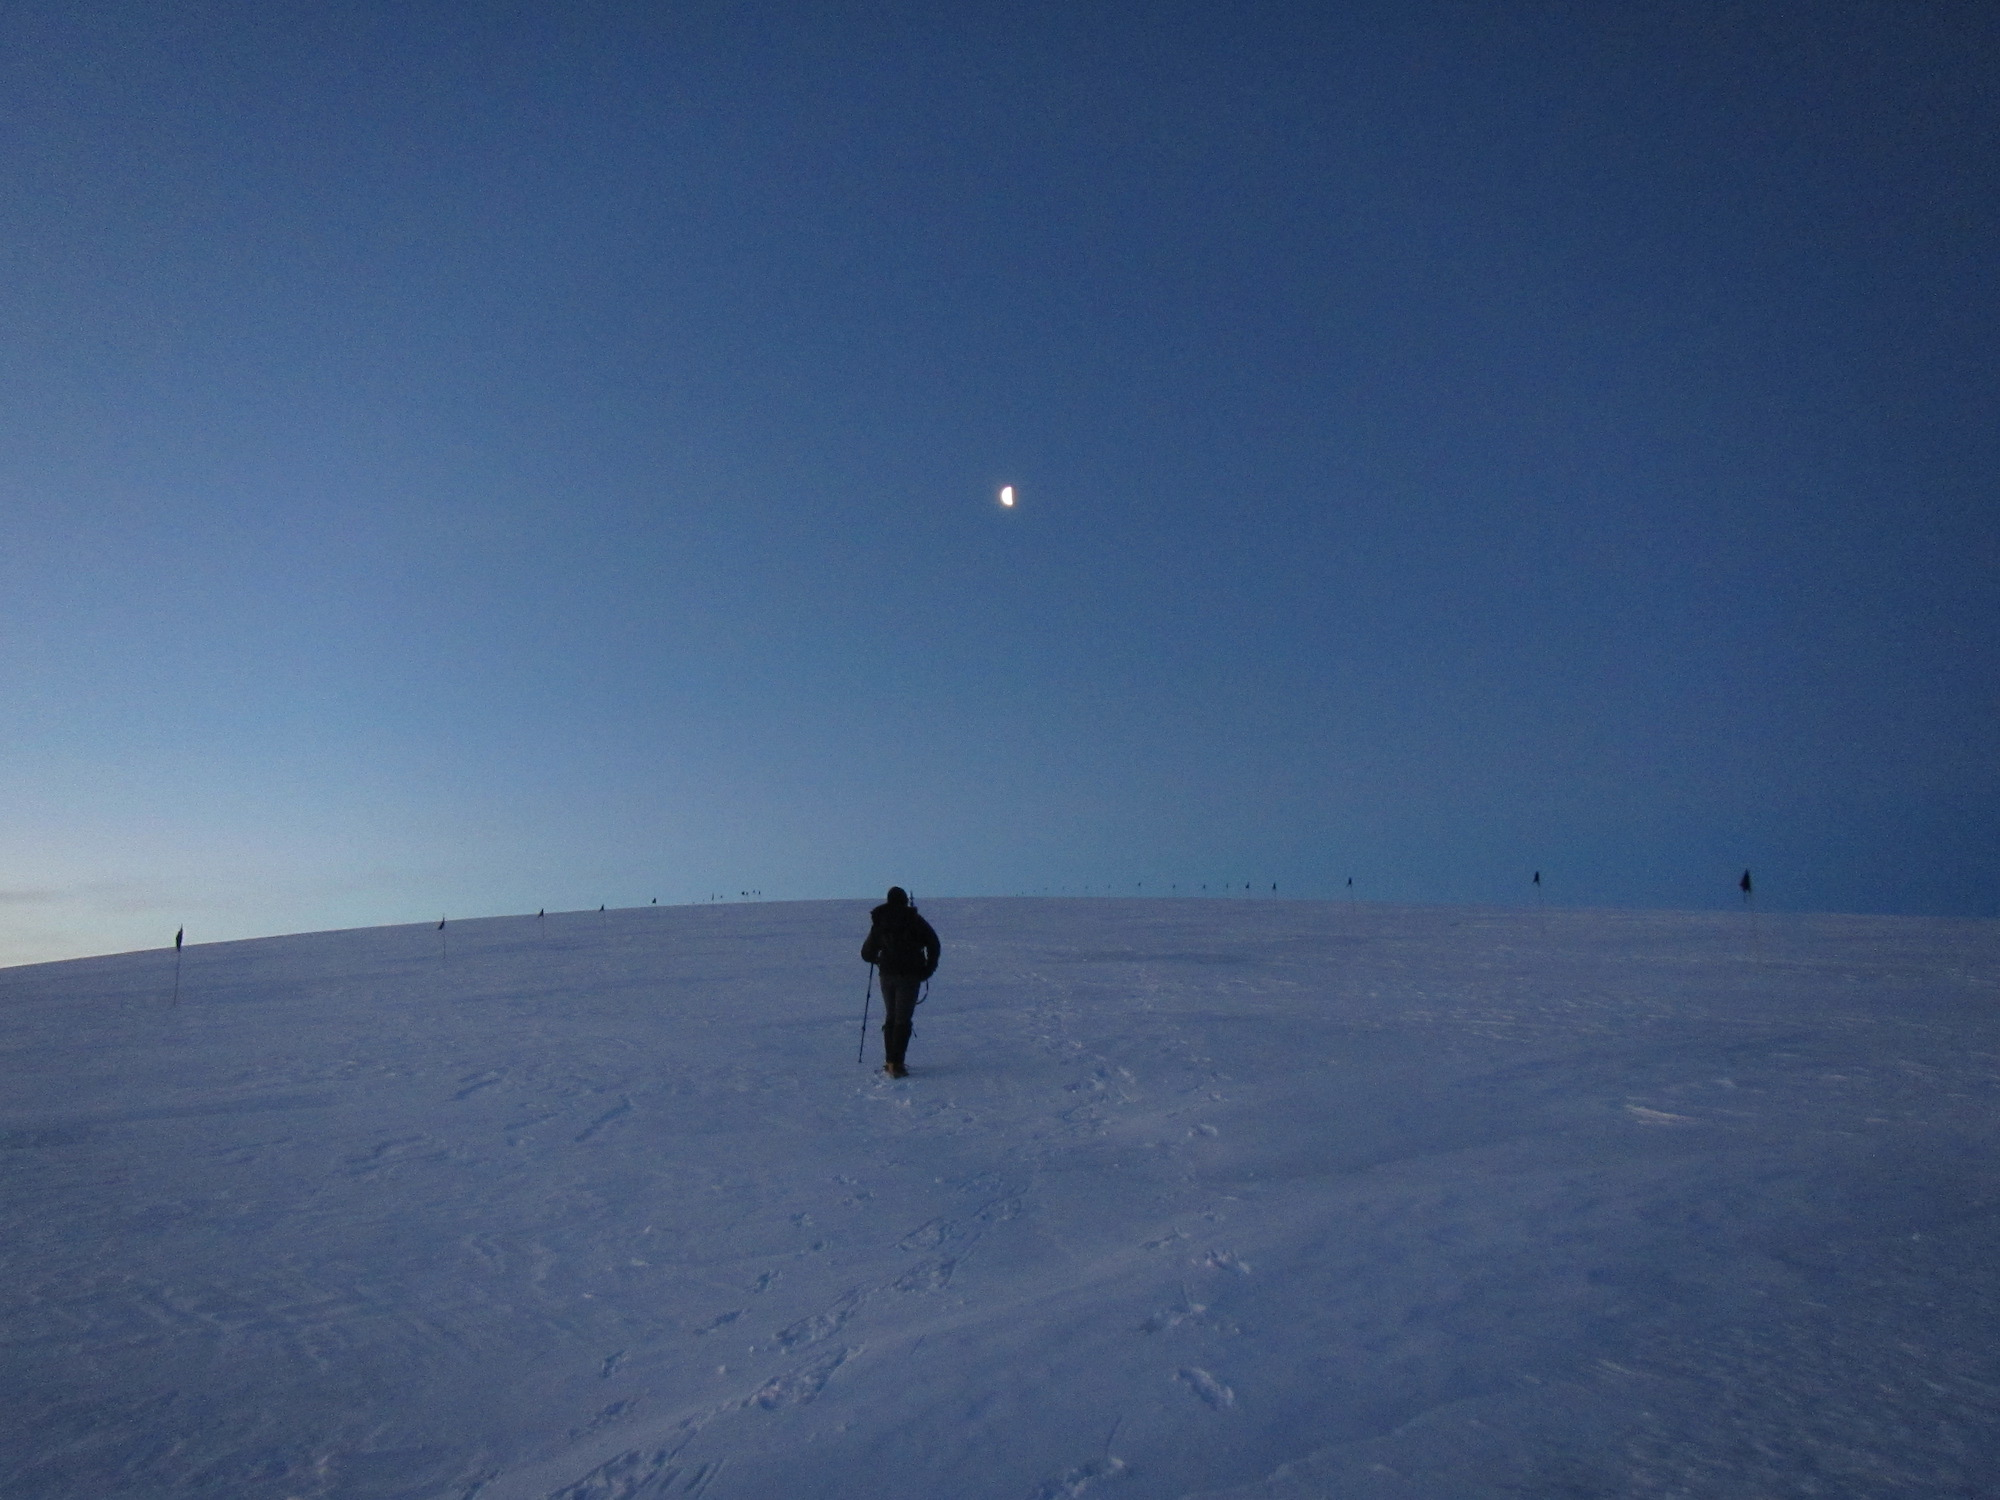 Spring days bring a twilight that last for hours. Greg makes his way up the glacier toward the rising moon.